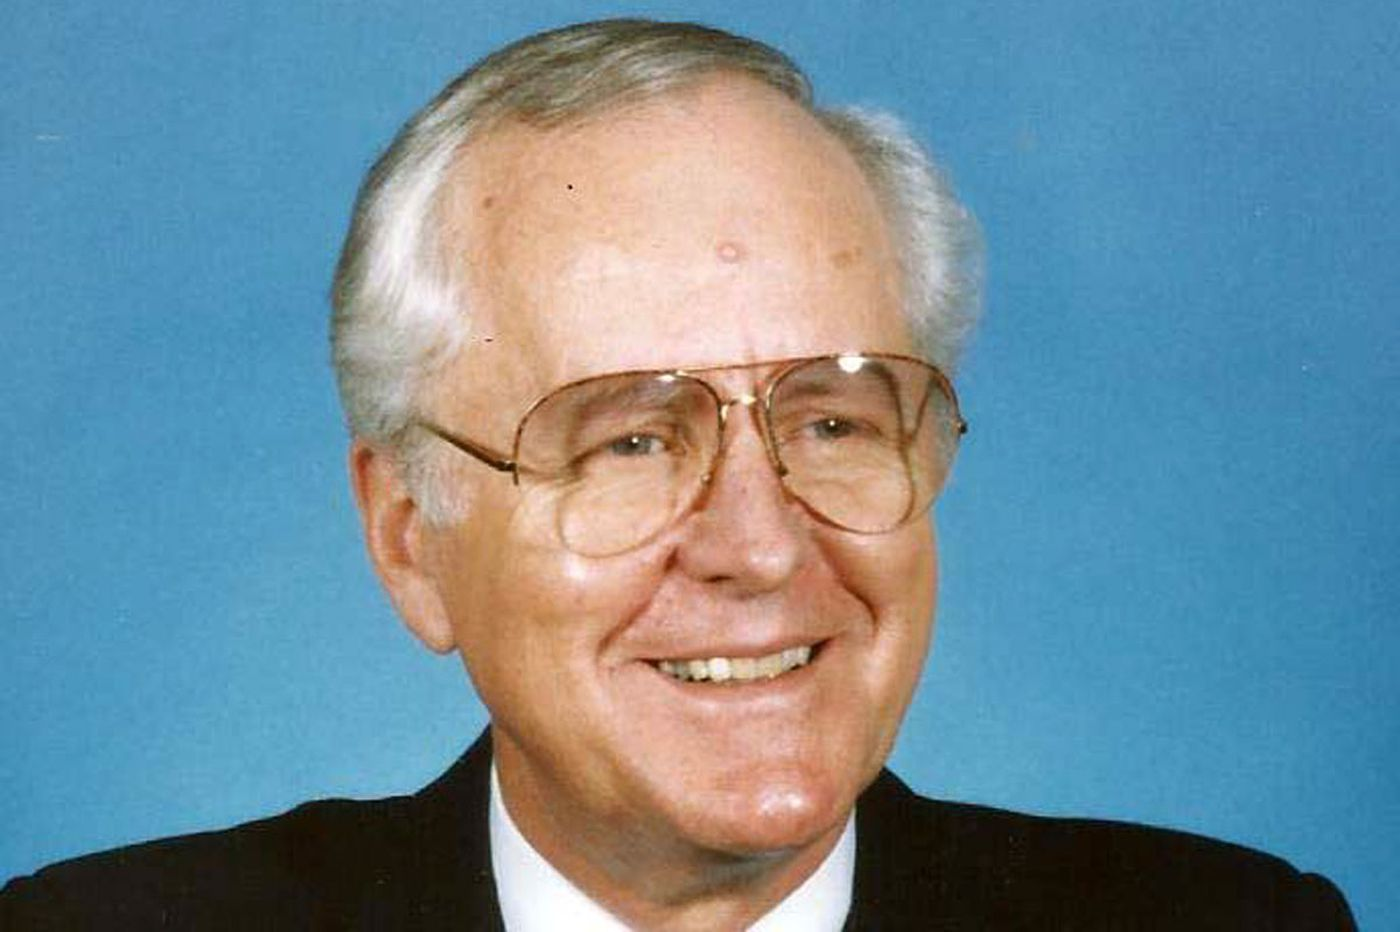 Melvin Kampmann, 85, pioneer who created 'Action News' and changed television